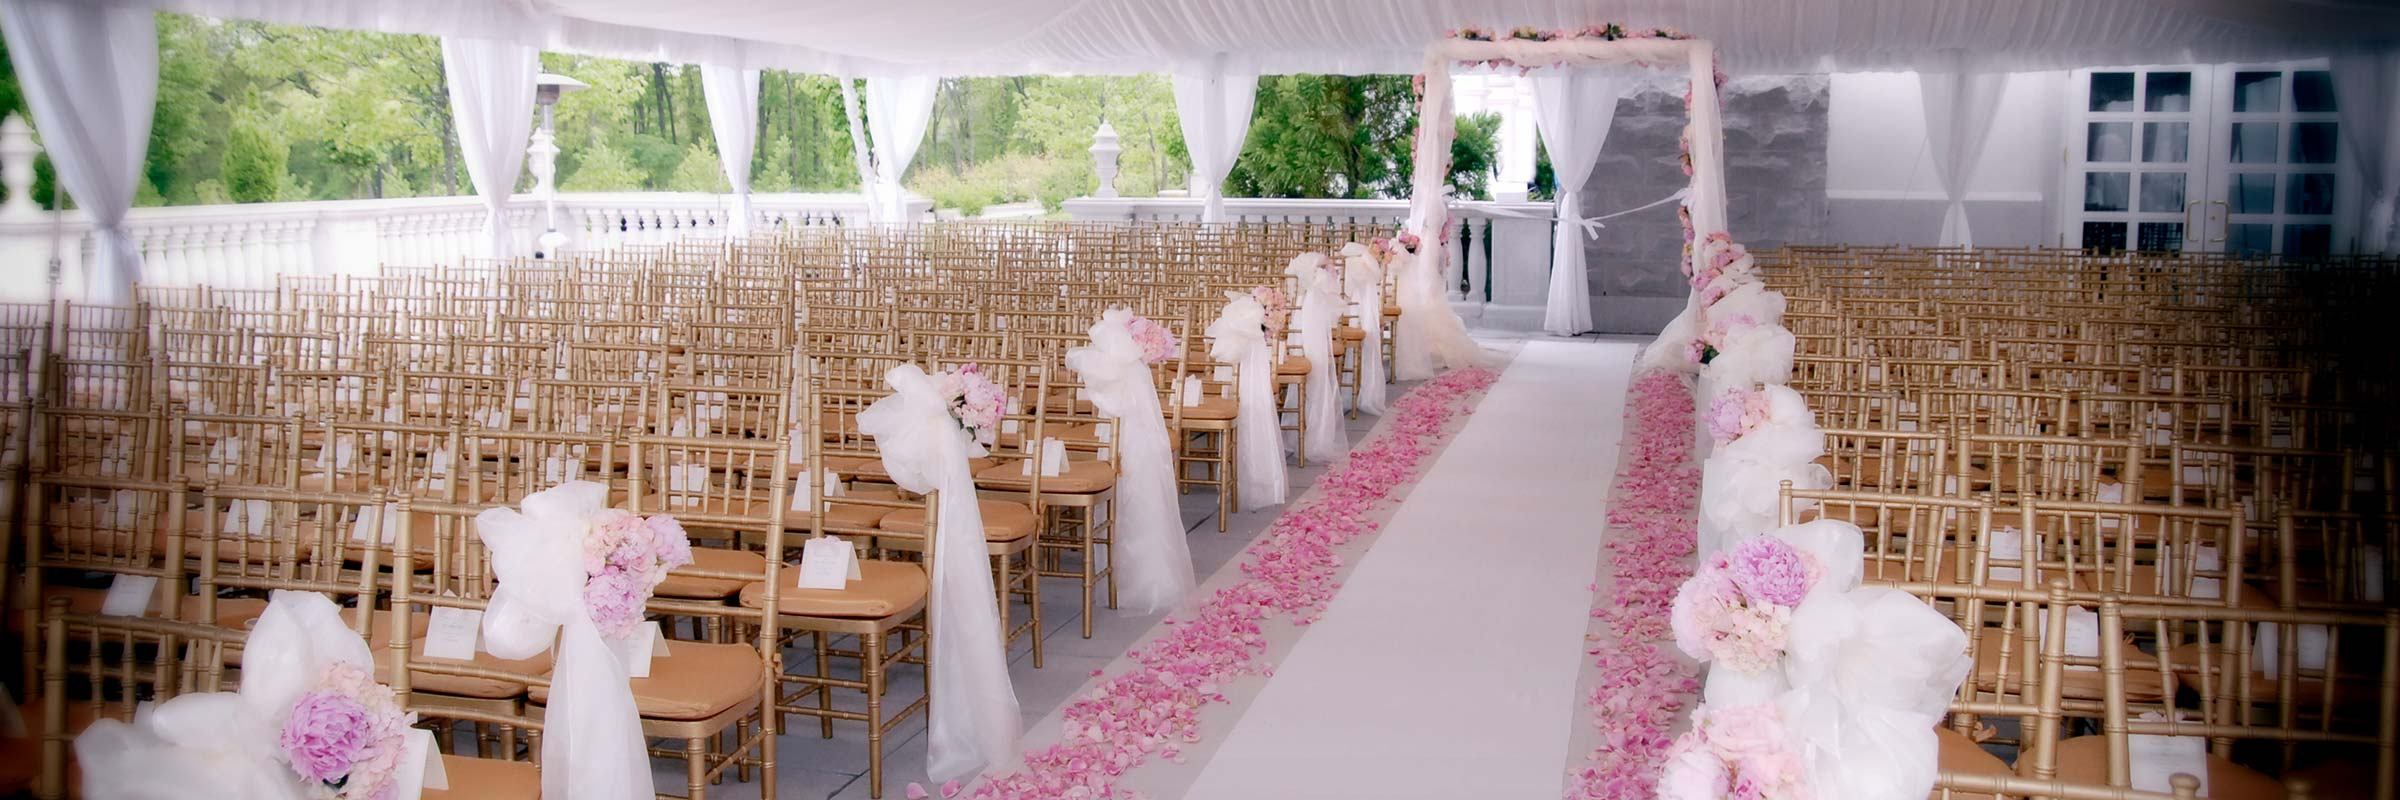 Wedding Aisle Fresh Flowers Petals Outdoor Tent